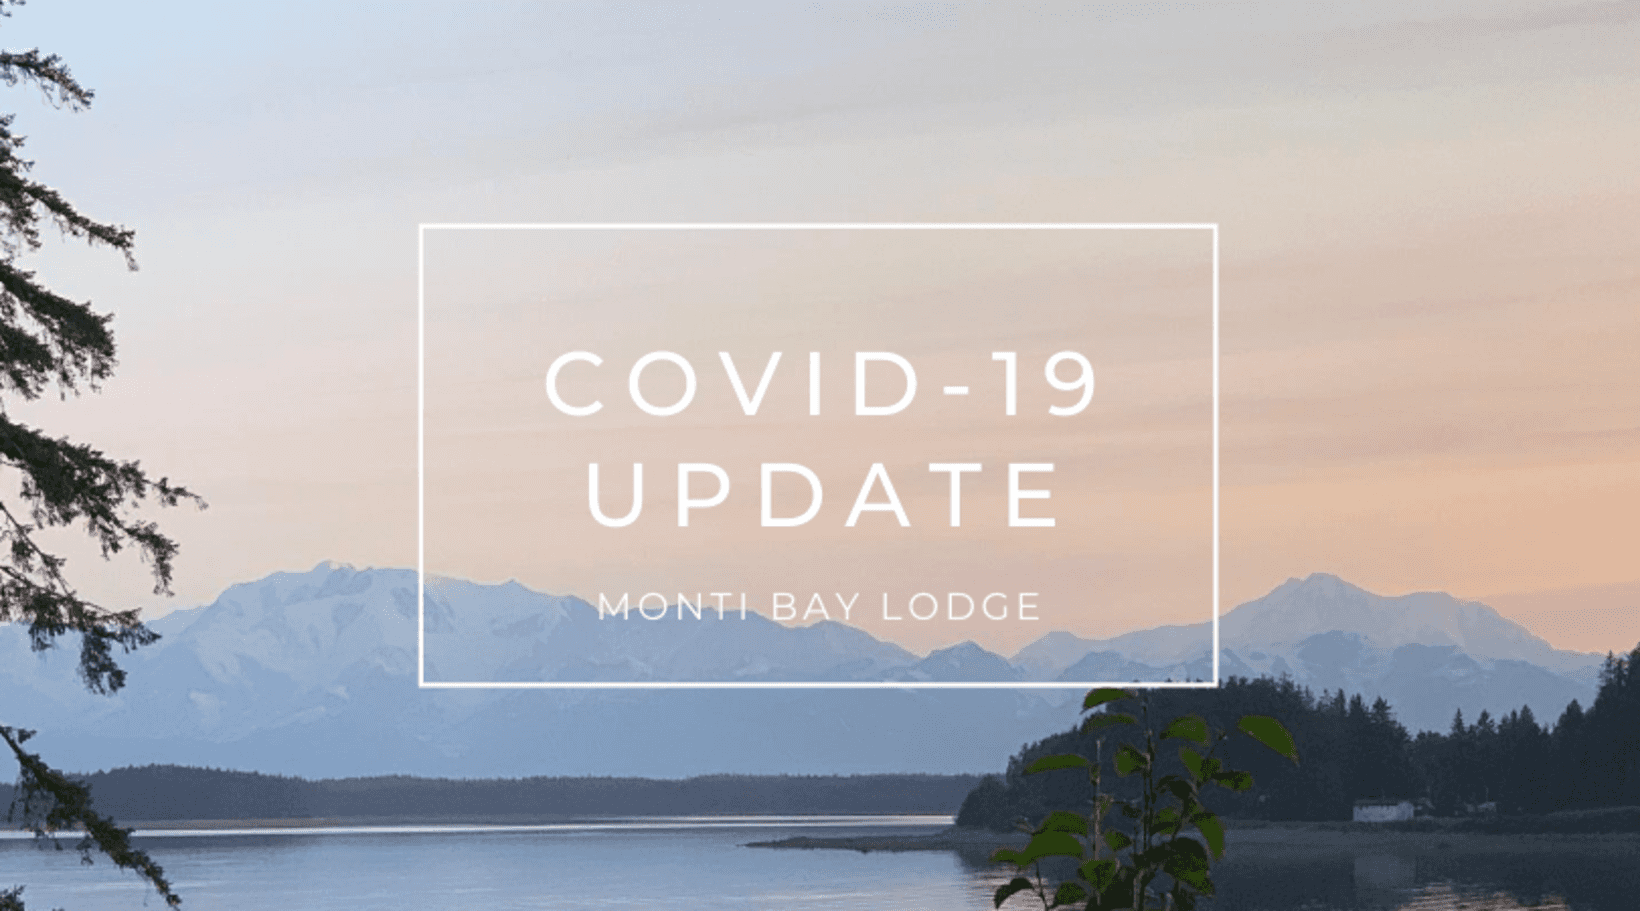 Covid-19 Notice August 10, 2020